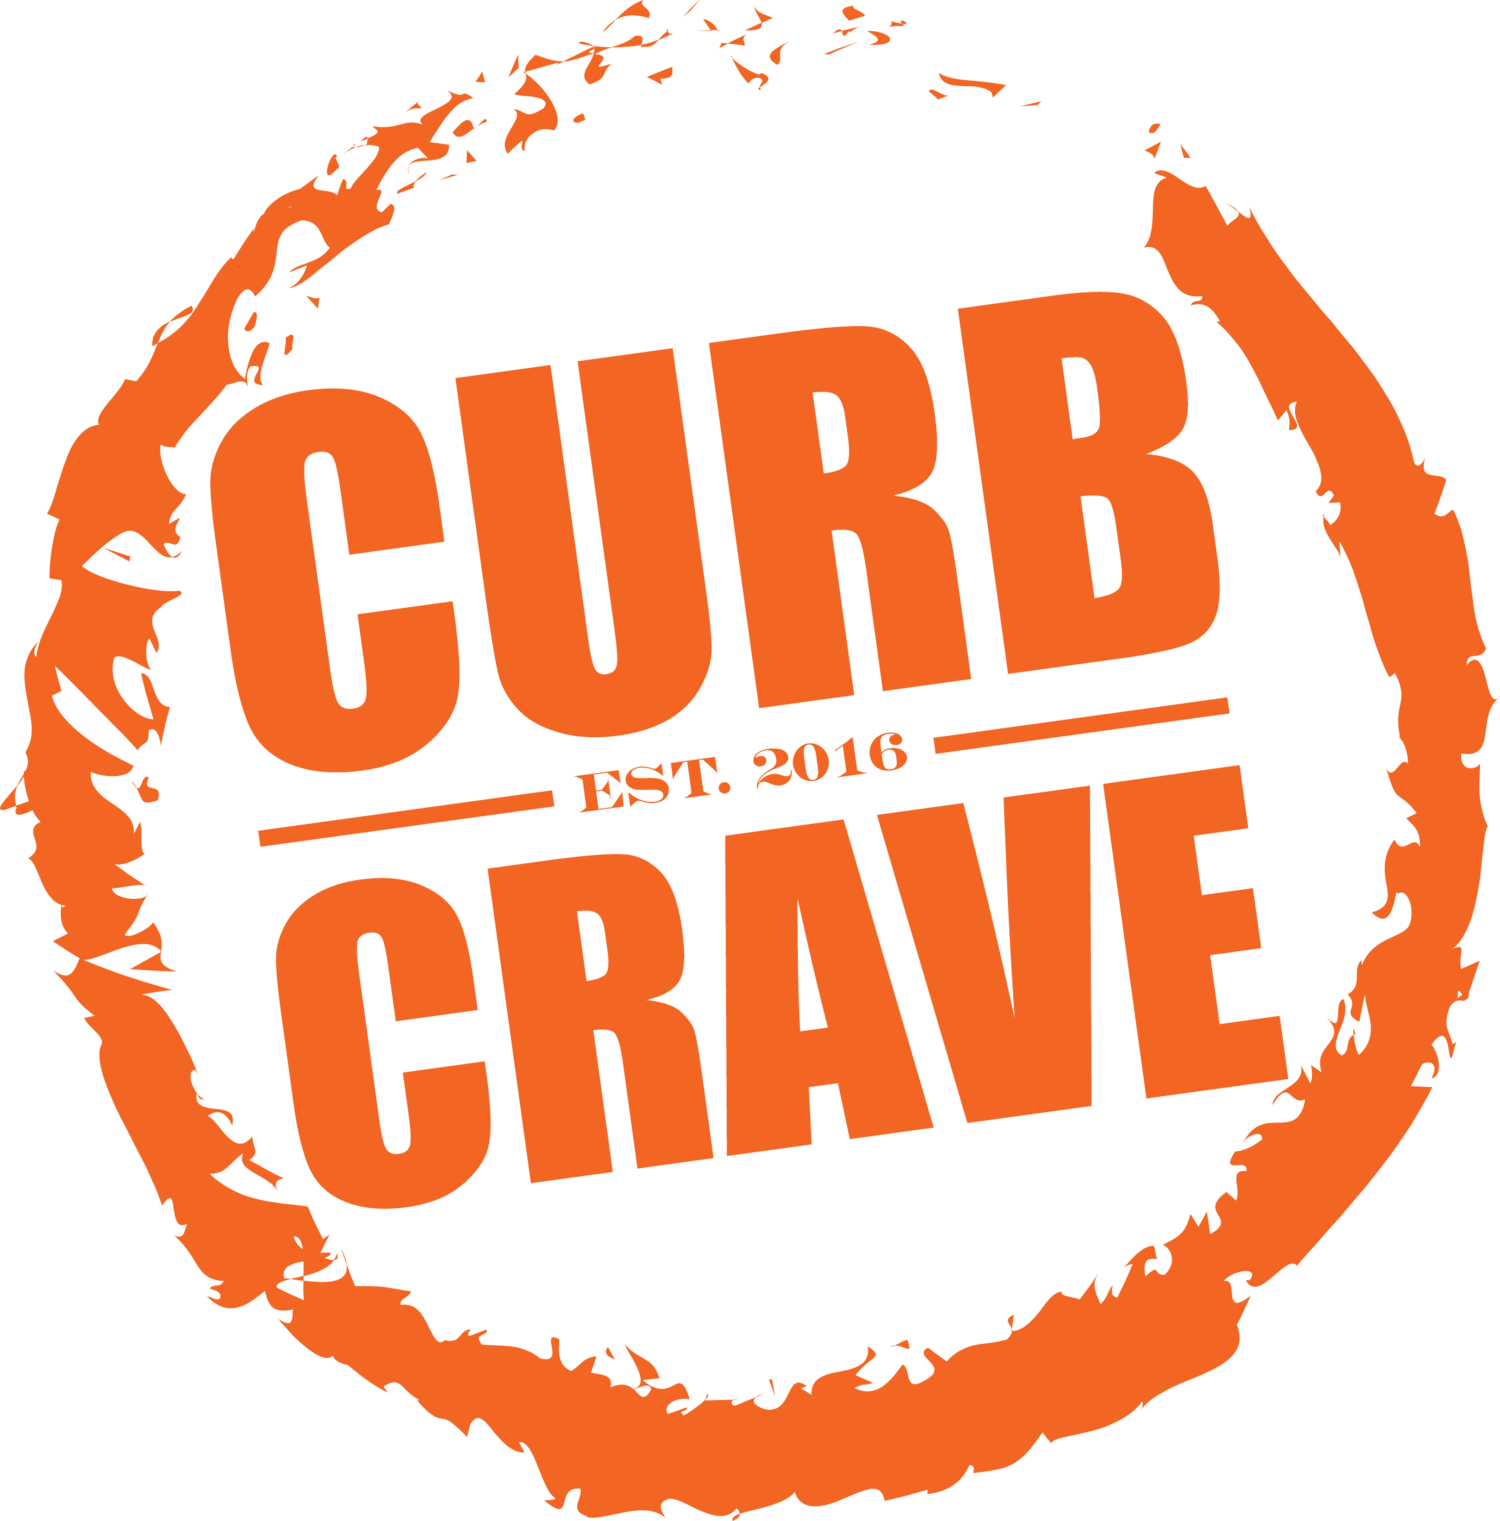 Curb Crave Food Truck - Food Truck Catering